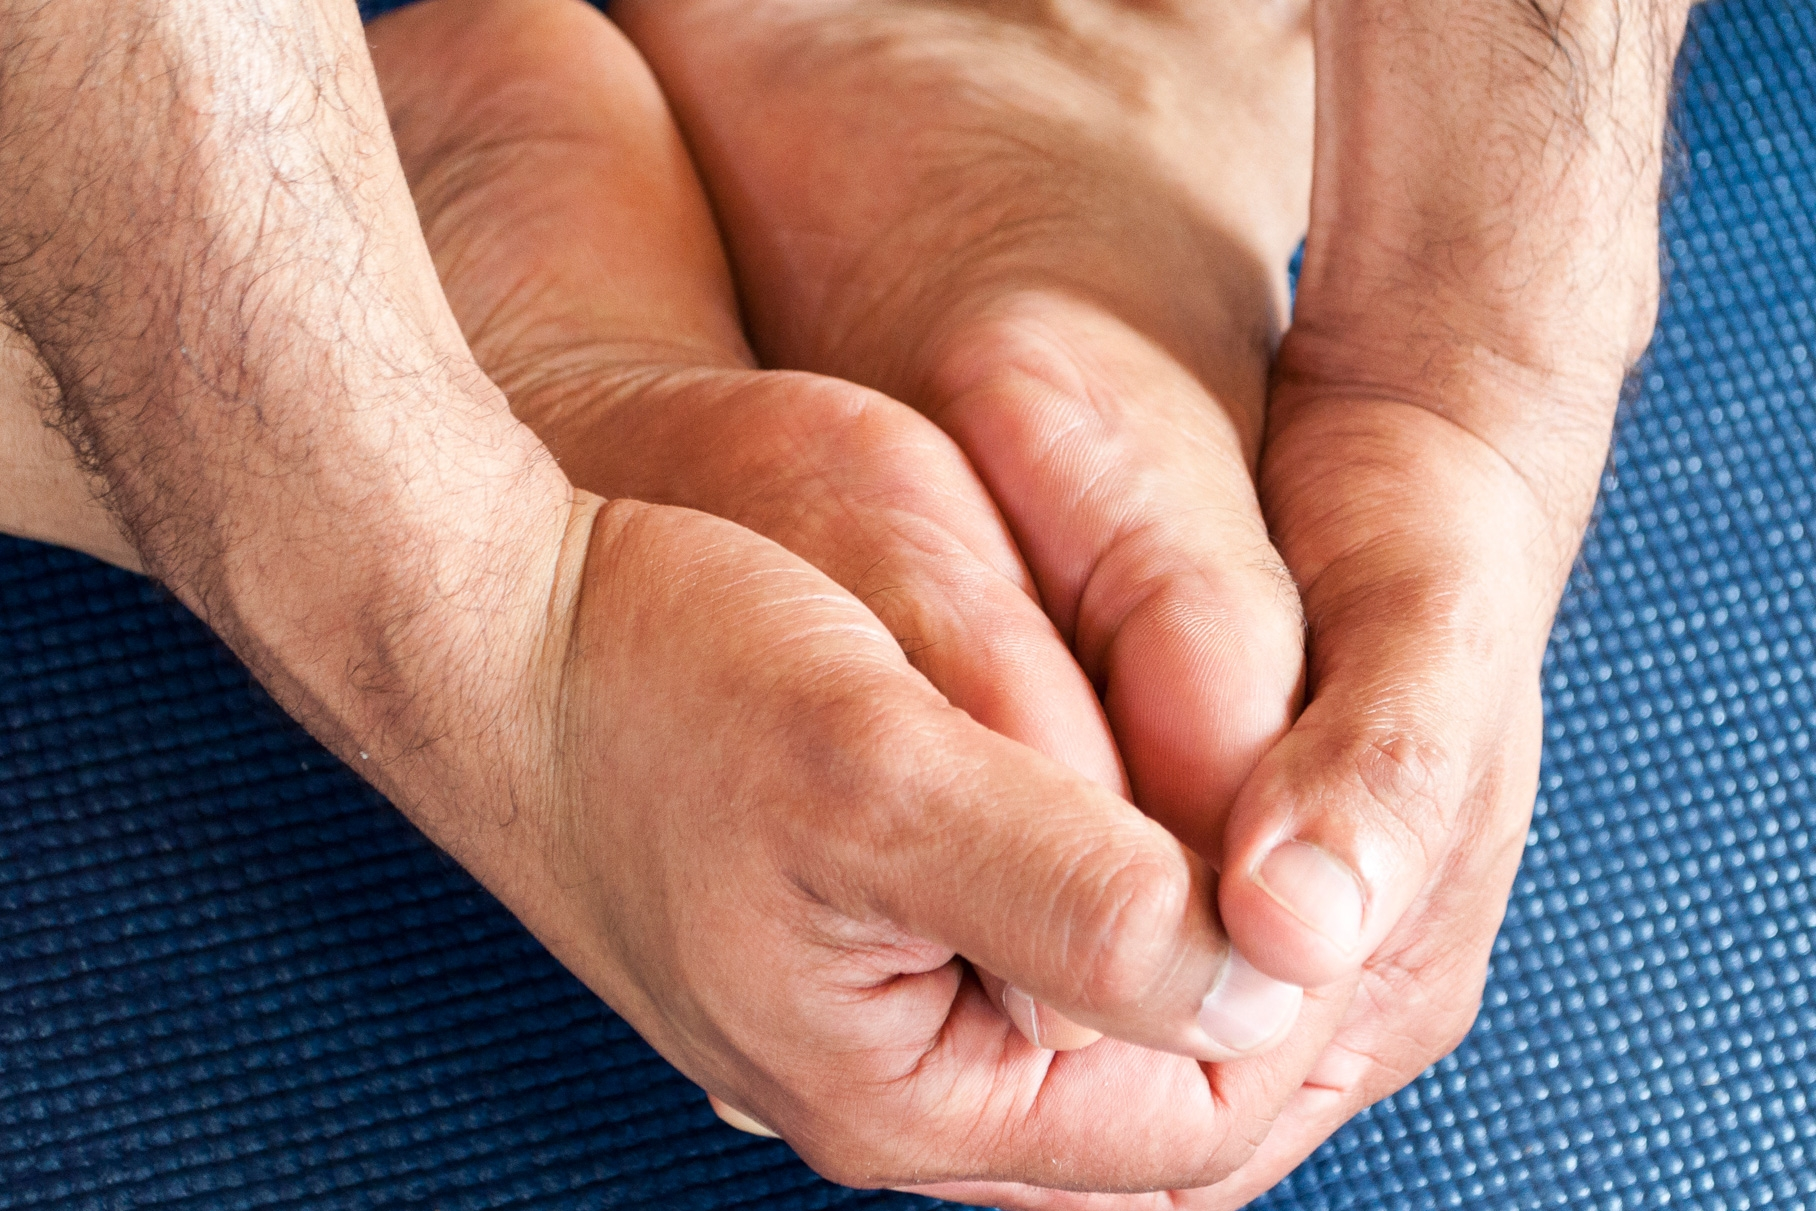 Two hands clasped around two feet together